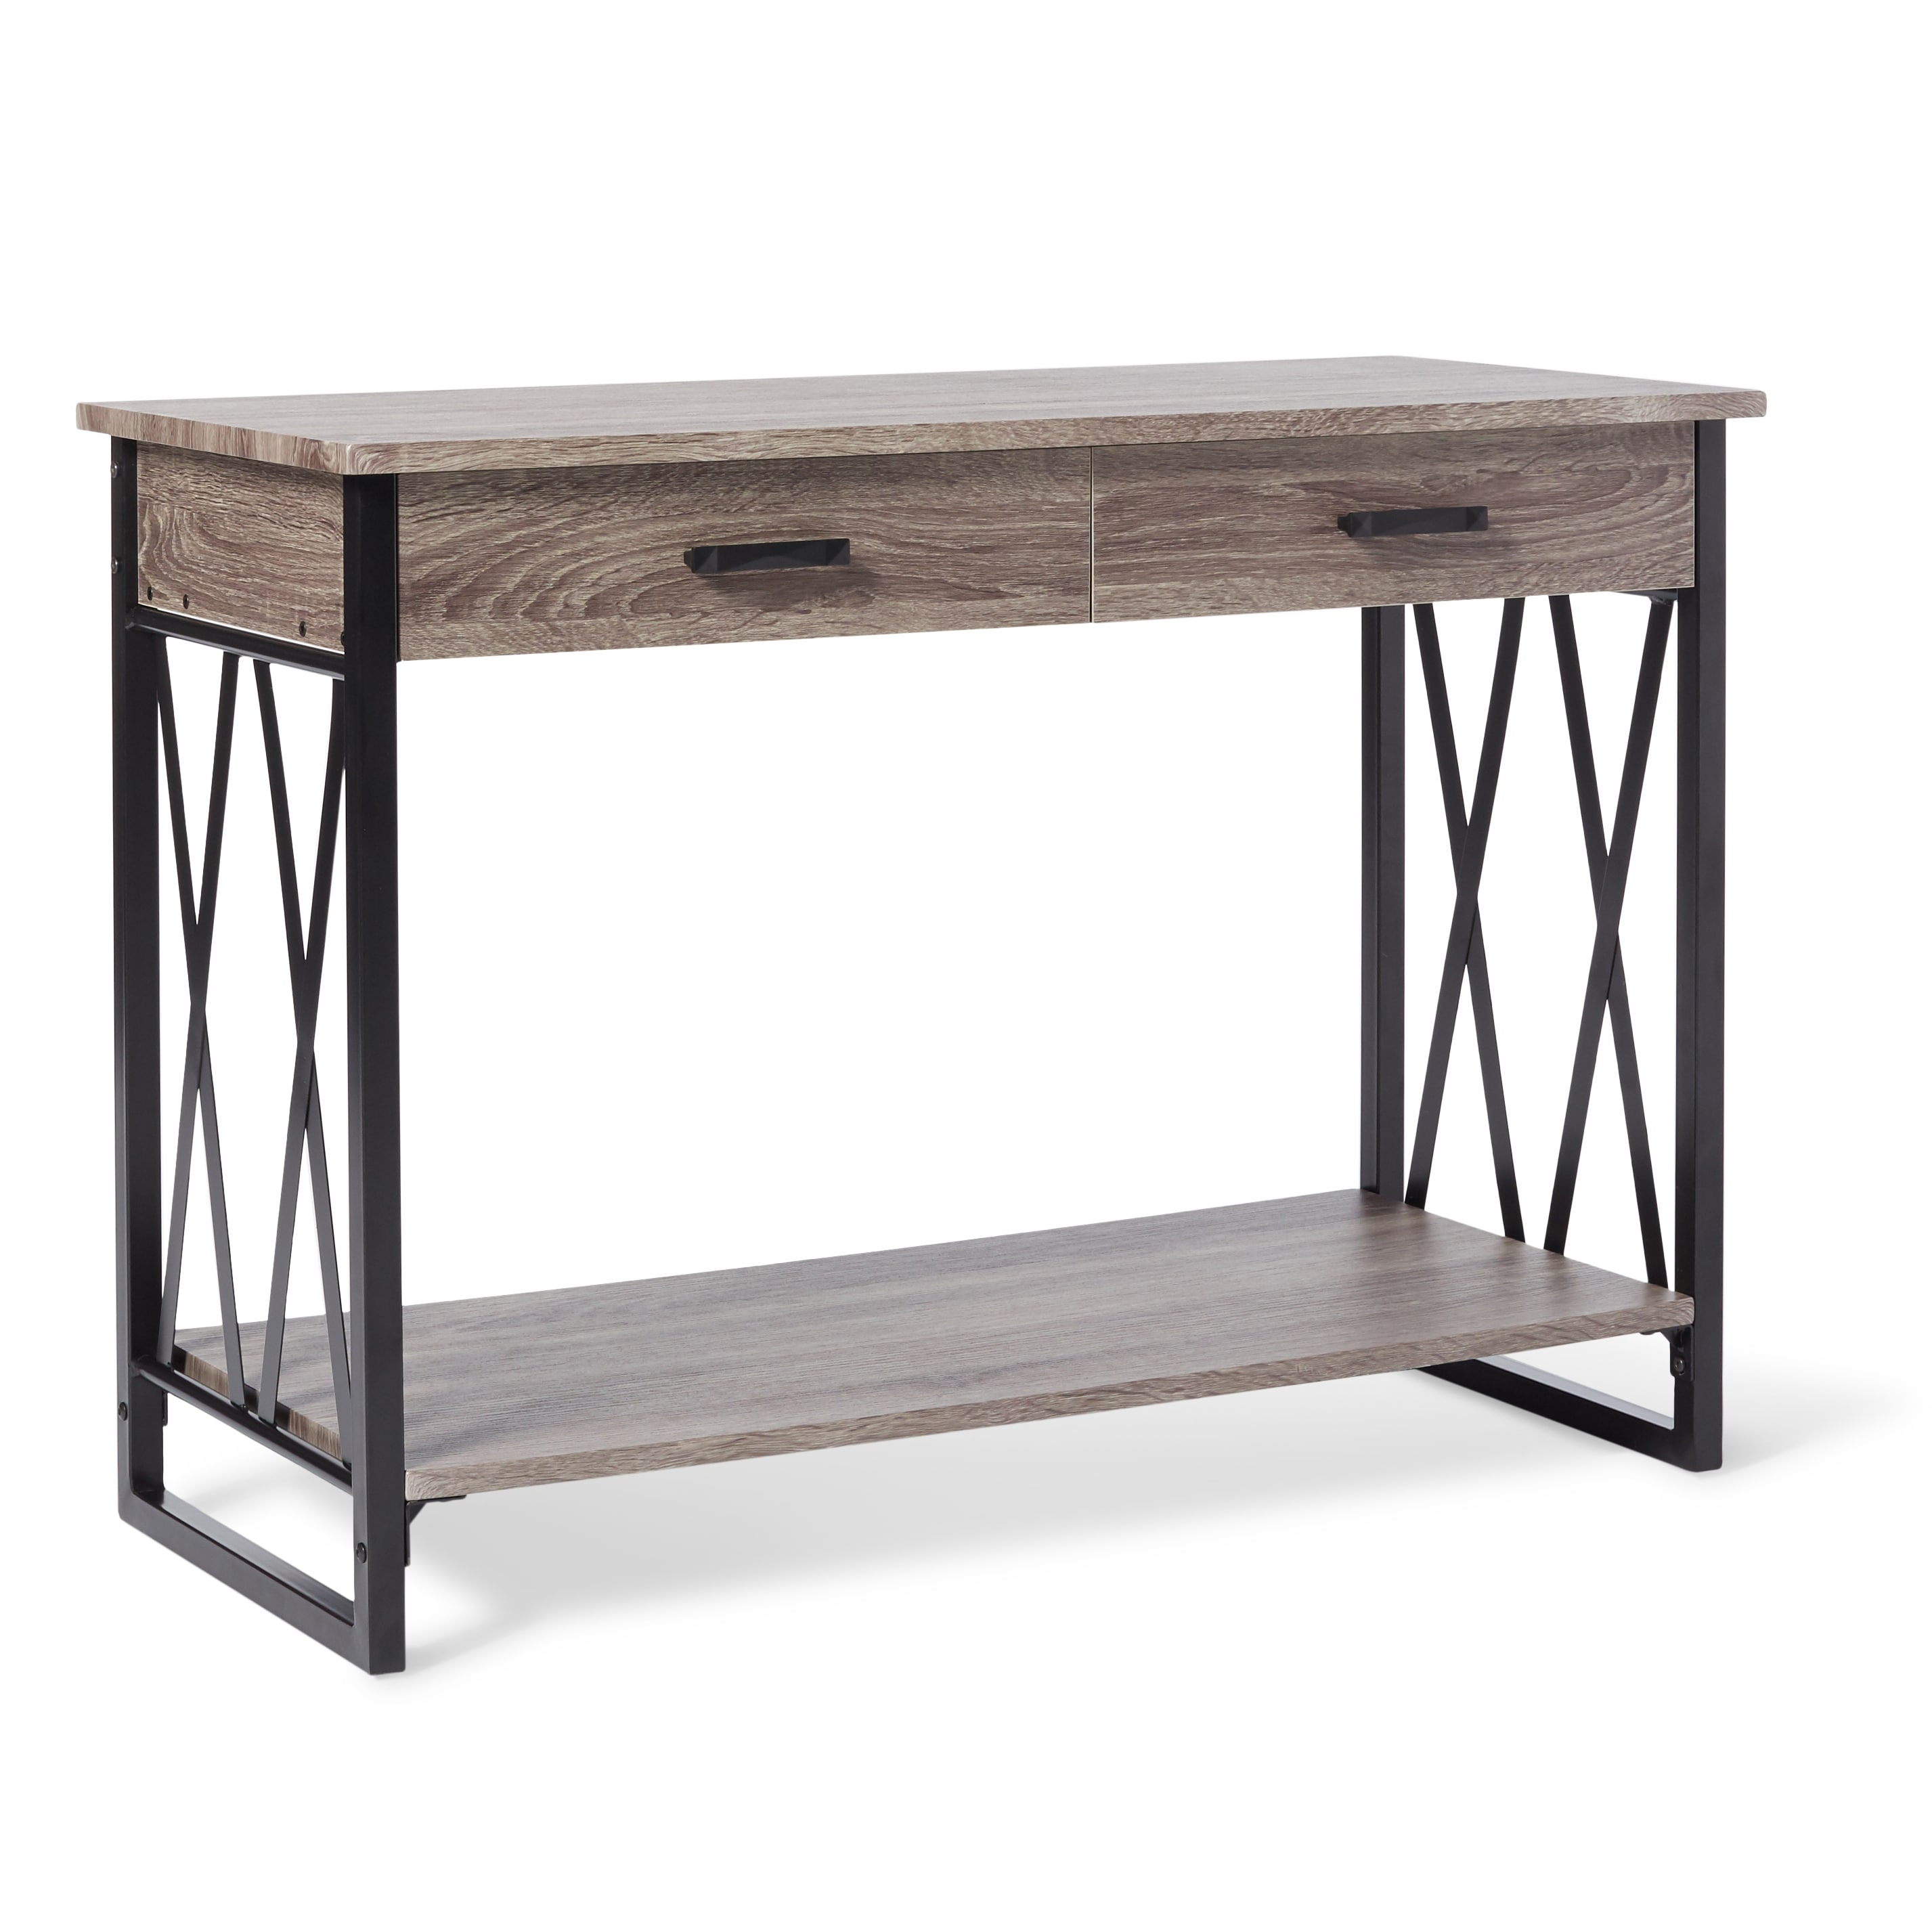 Seneca Möbel seneca reclaimed finish sofa table free shipping today overstock